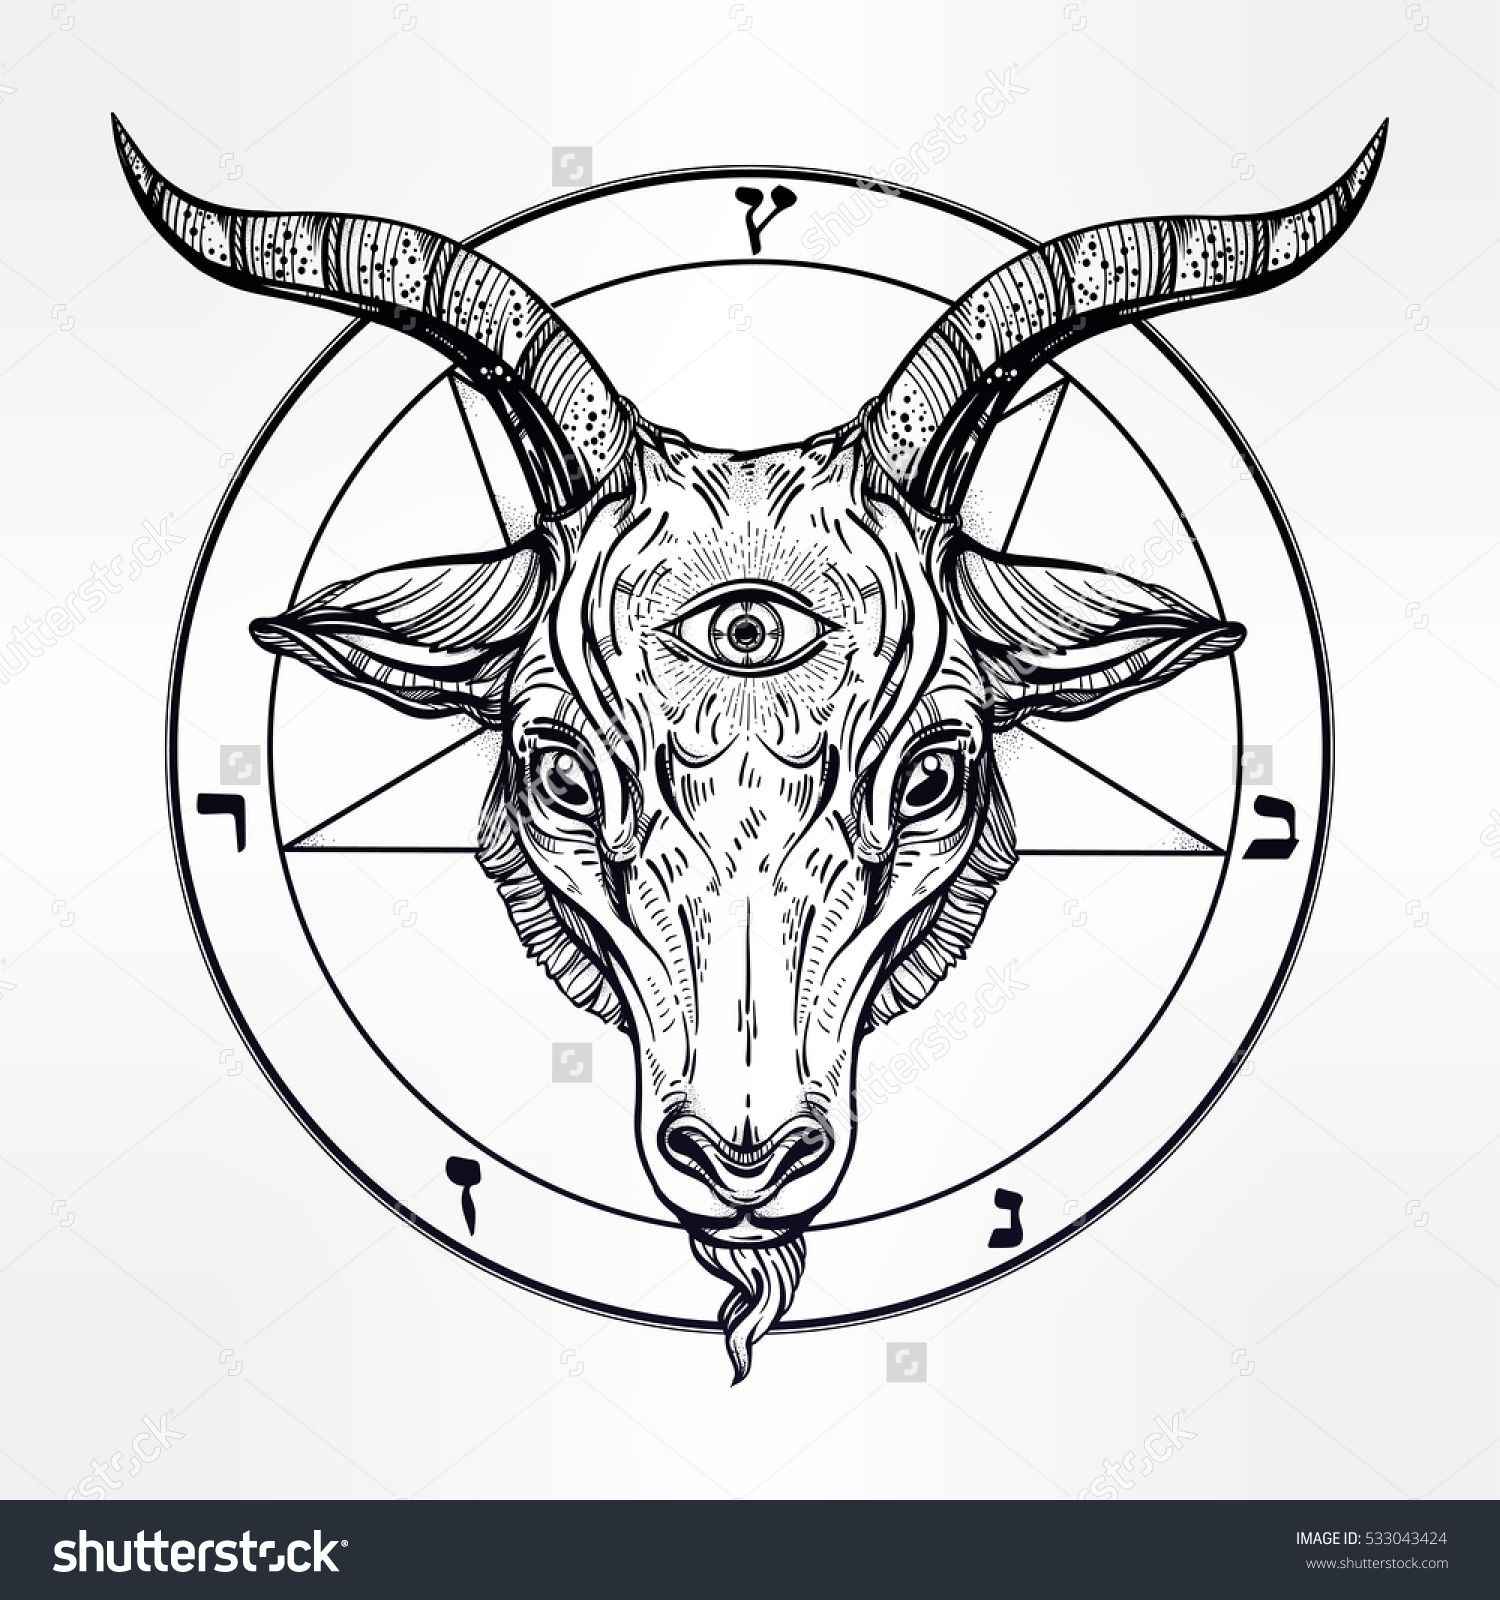 cb7932661a9de Satanic goat head with third eye. Binary satanic symbol. Vector  illustration isolated. Tattoo design, retro, music, summer, print symbol  for biker black ...